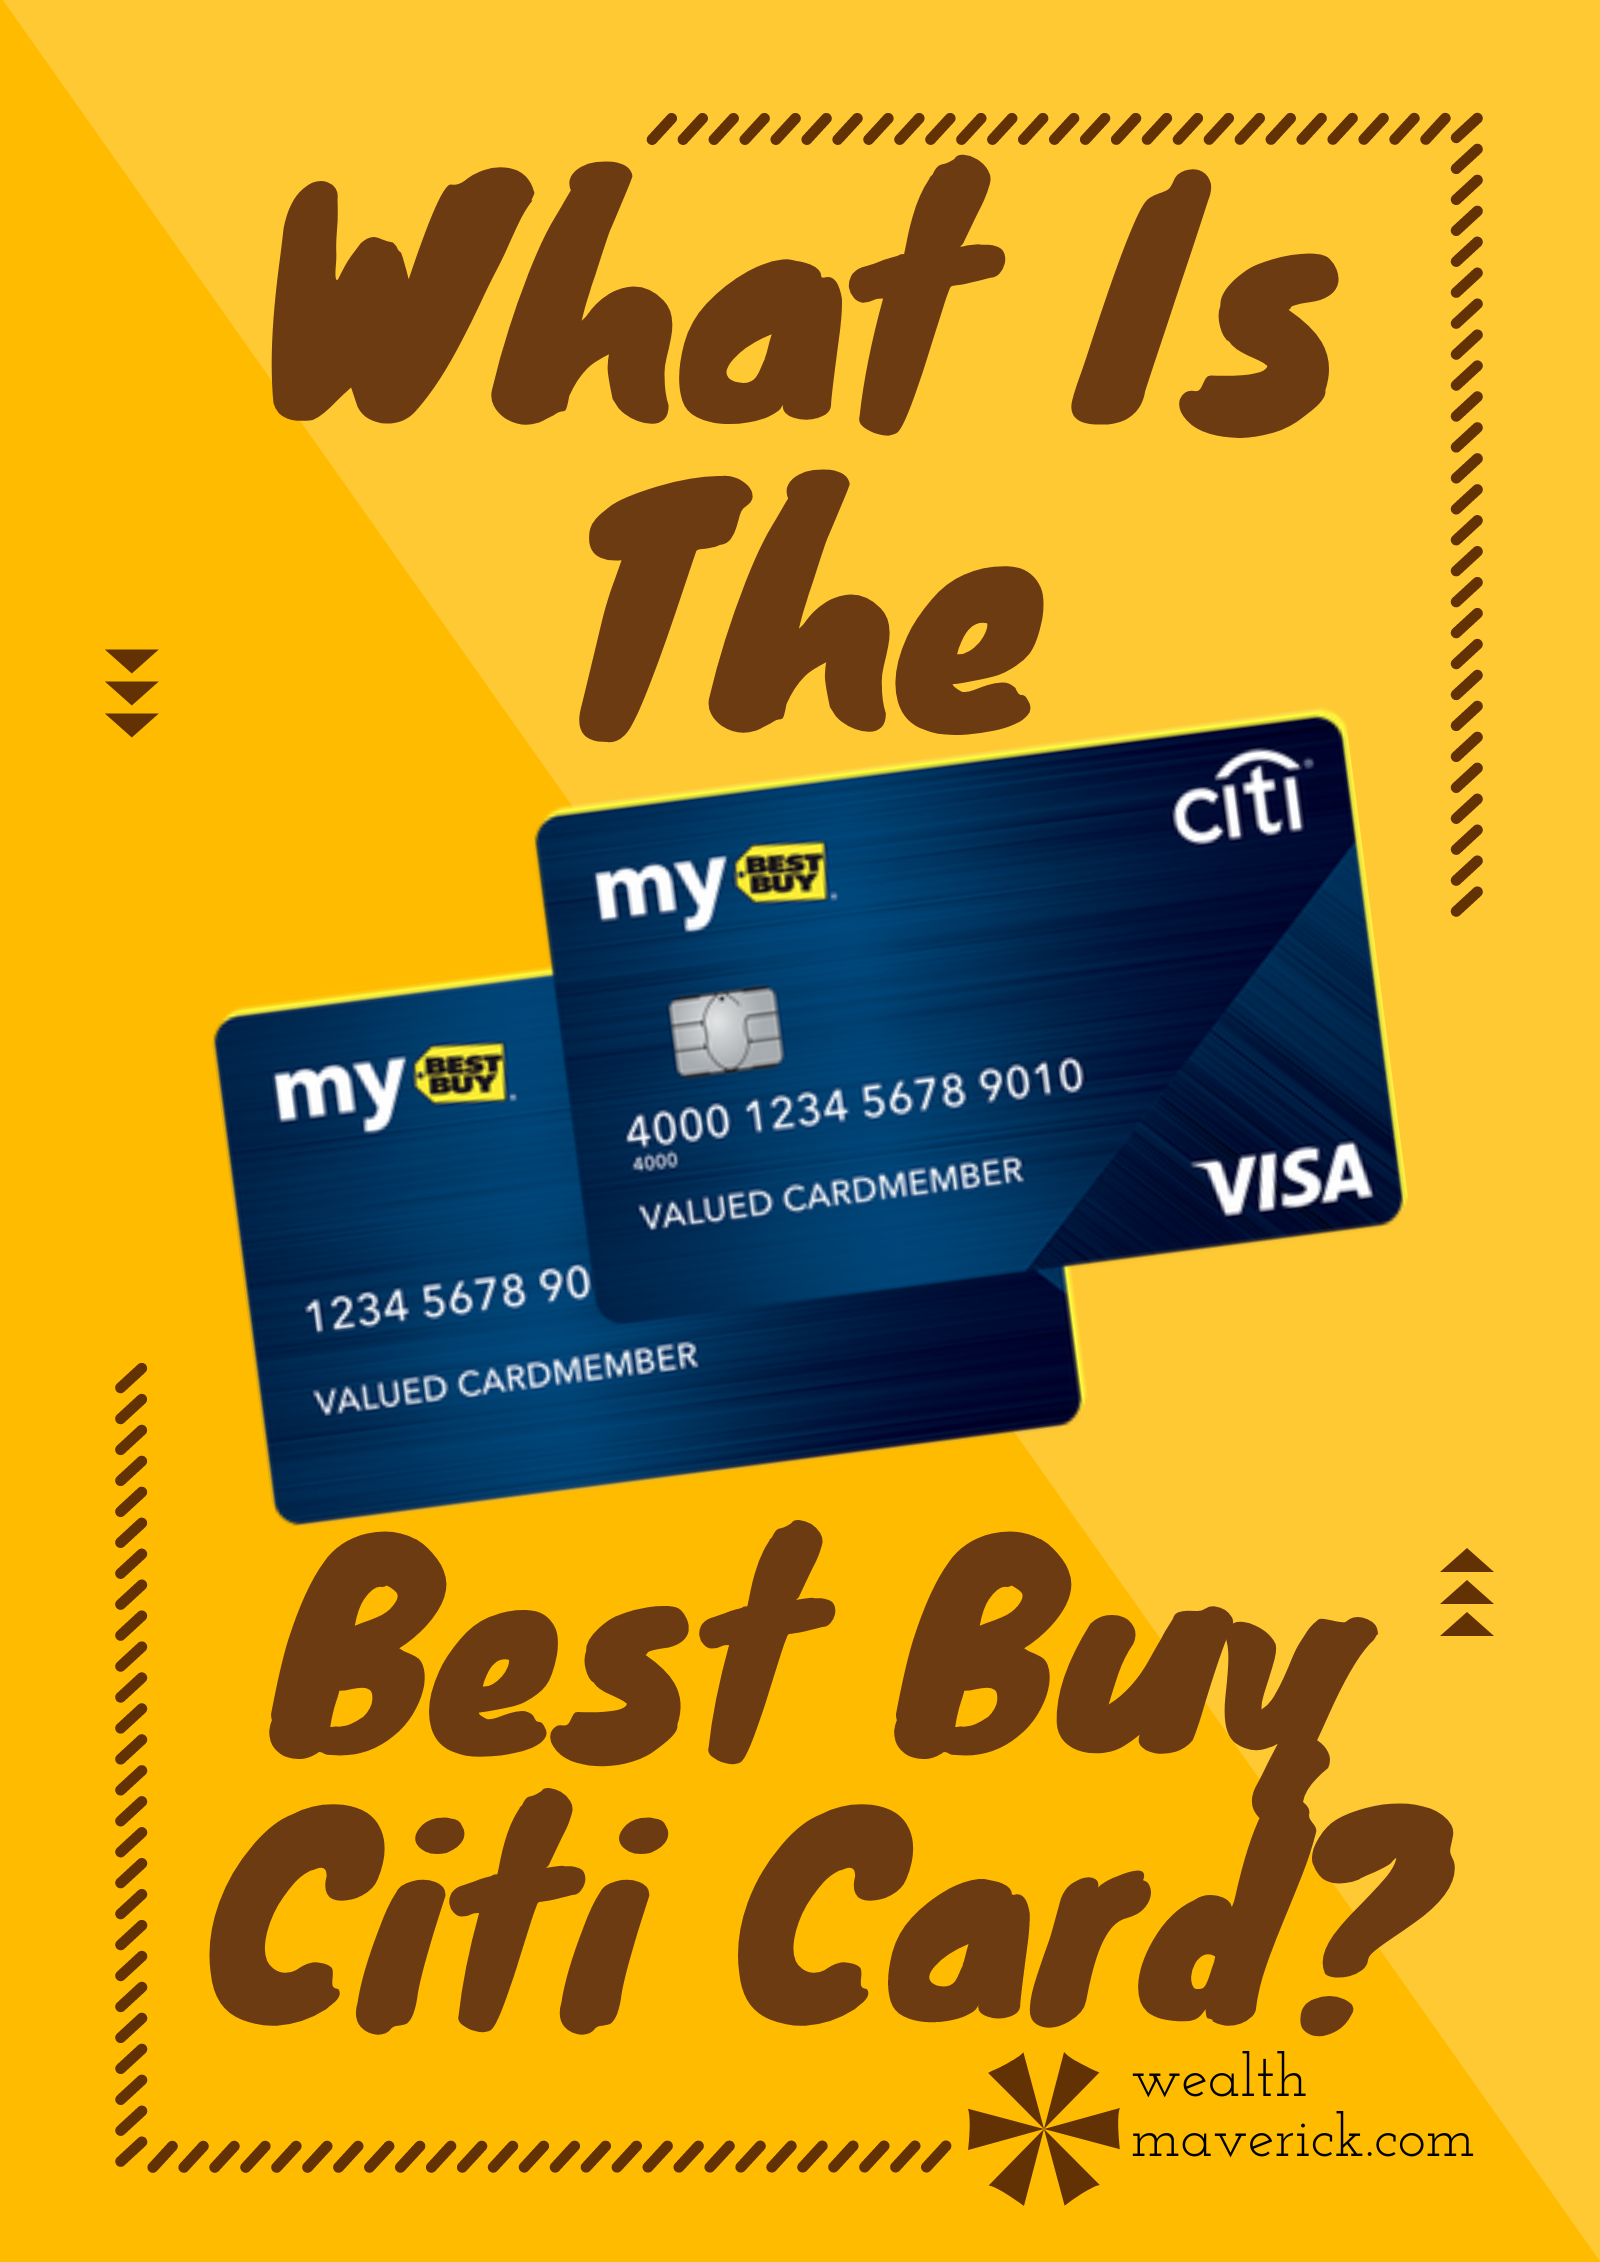 Best Buy Citi Card Reviewed Business credit cards, Cool